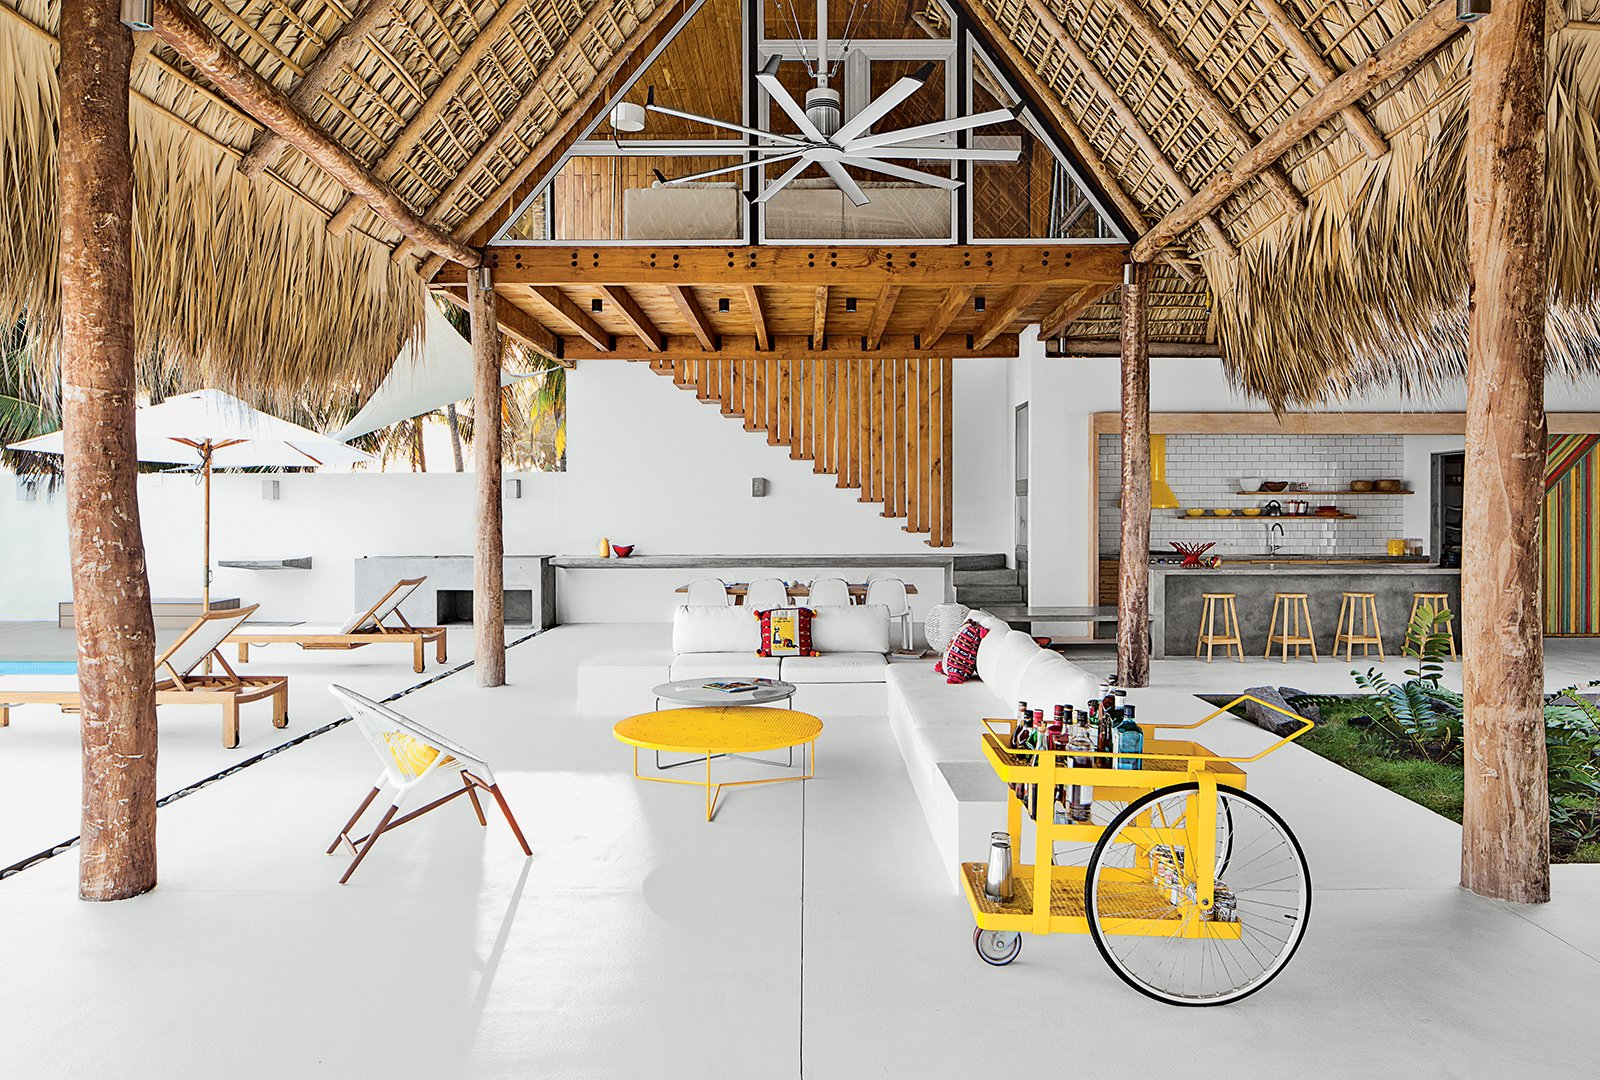 The living-dining area of a beach house designed by El Salvador firm Cincopatasalgato features a custom bar cart by local designers Claudia & Harry Washington, a built-in sofa, and an Ikono chair and Circa low tables by The Carrot Concept. Bursts of Yellow and Indoor Gardens Are Just Two Reasons to Love This Home - Photo 2 of 6